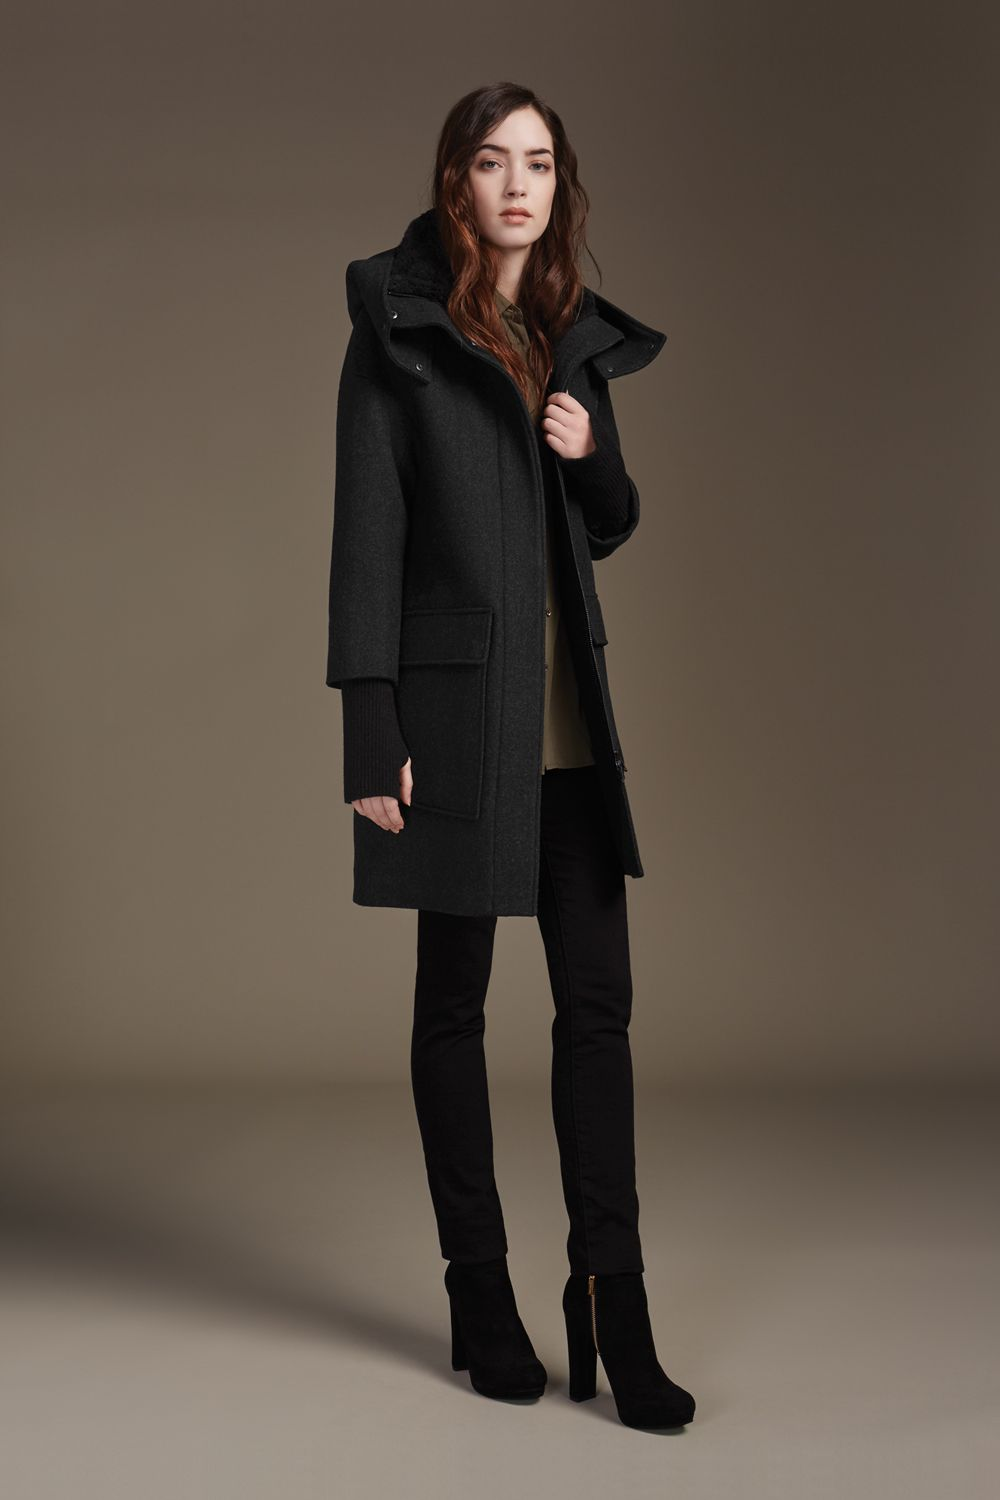 KERRIANE is a mid-length wool parka with oversize hood. Signature Sherpa lining at collar, quilted lining at bodice, and elongated ribbed cuffs with thumbholes provide extra warmth. Accented with a high-low hem and dropped shoulders, making this style the perfect effortless must-have. Discover at http://www.soiakyo.com/ca/en/kerriane-mid-length-wool-parka-with-hood-in-black-for-women